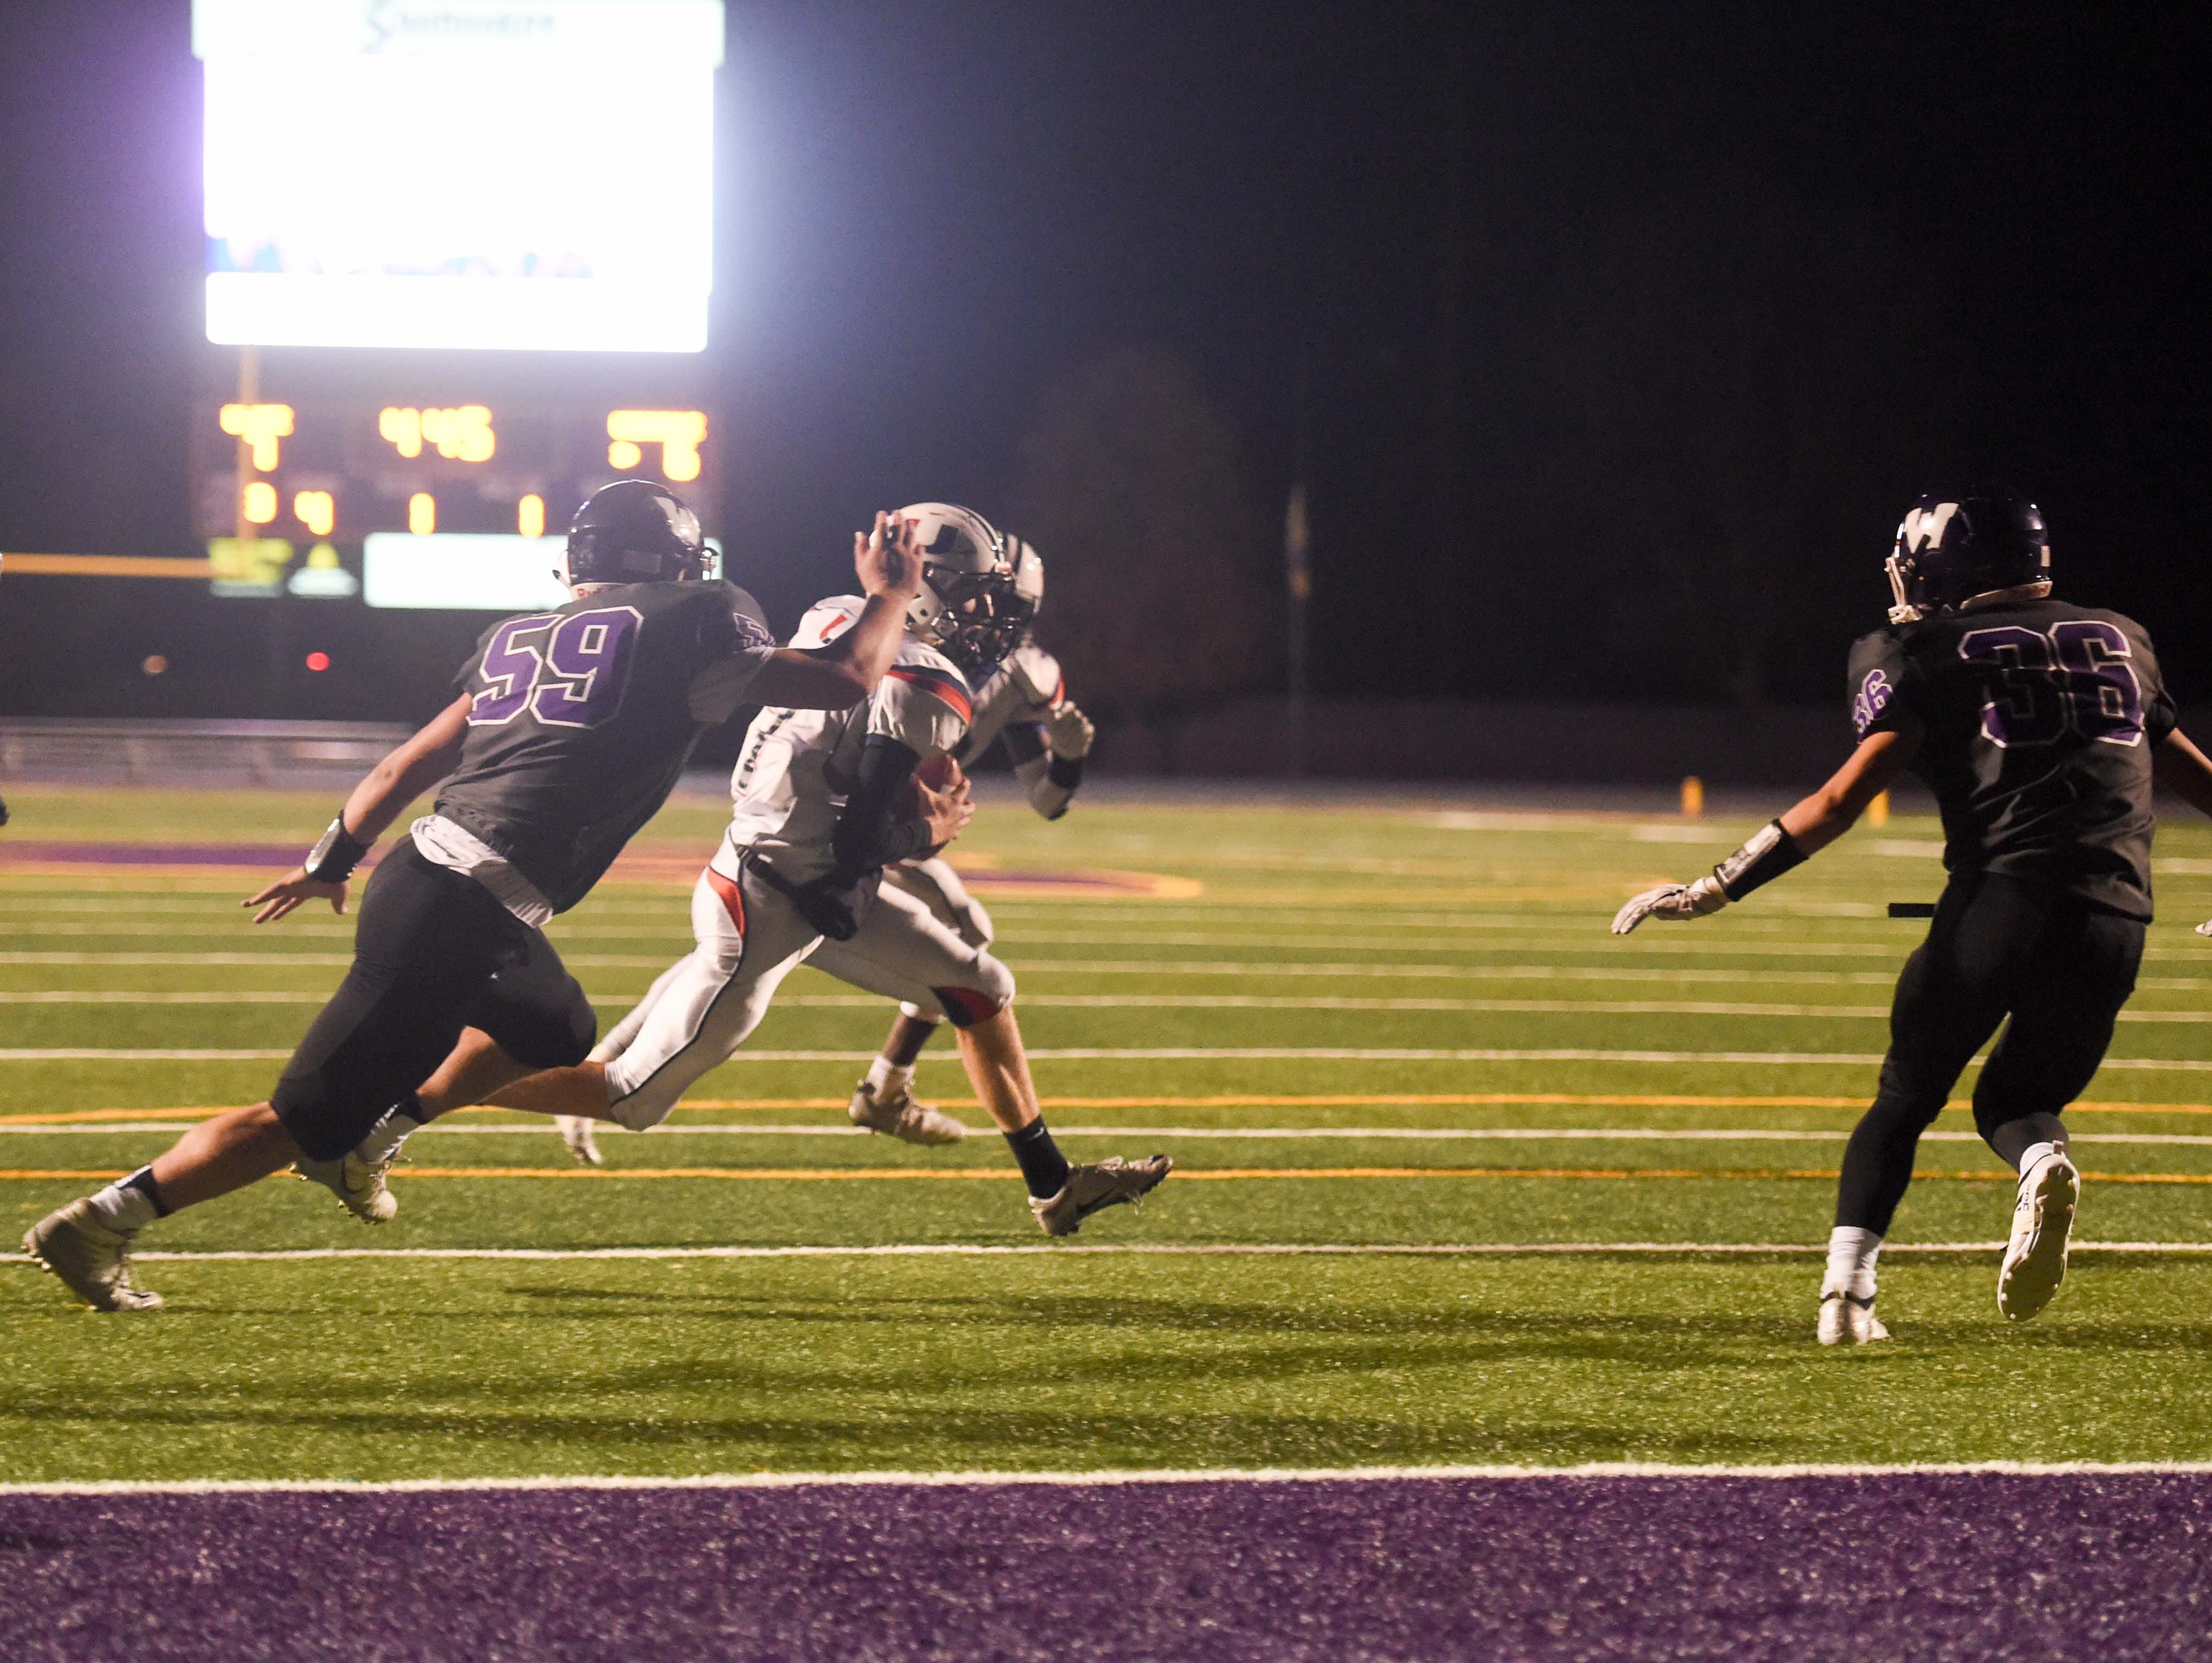 Urbandale quarterback Ty Langenberg (7) runs the ball for th the endzone on Friday, Oct. 26, 2018 during a playoff game between the Waukee Warriors and the Urbandale J-Hawks at Waukee High School.